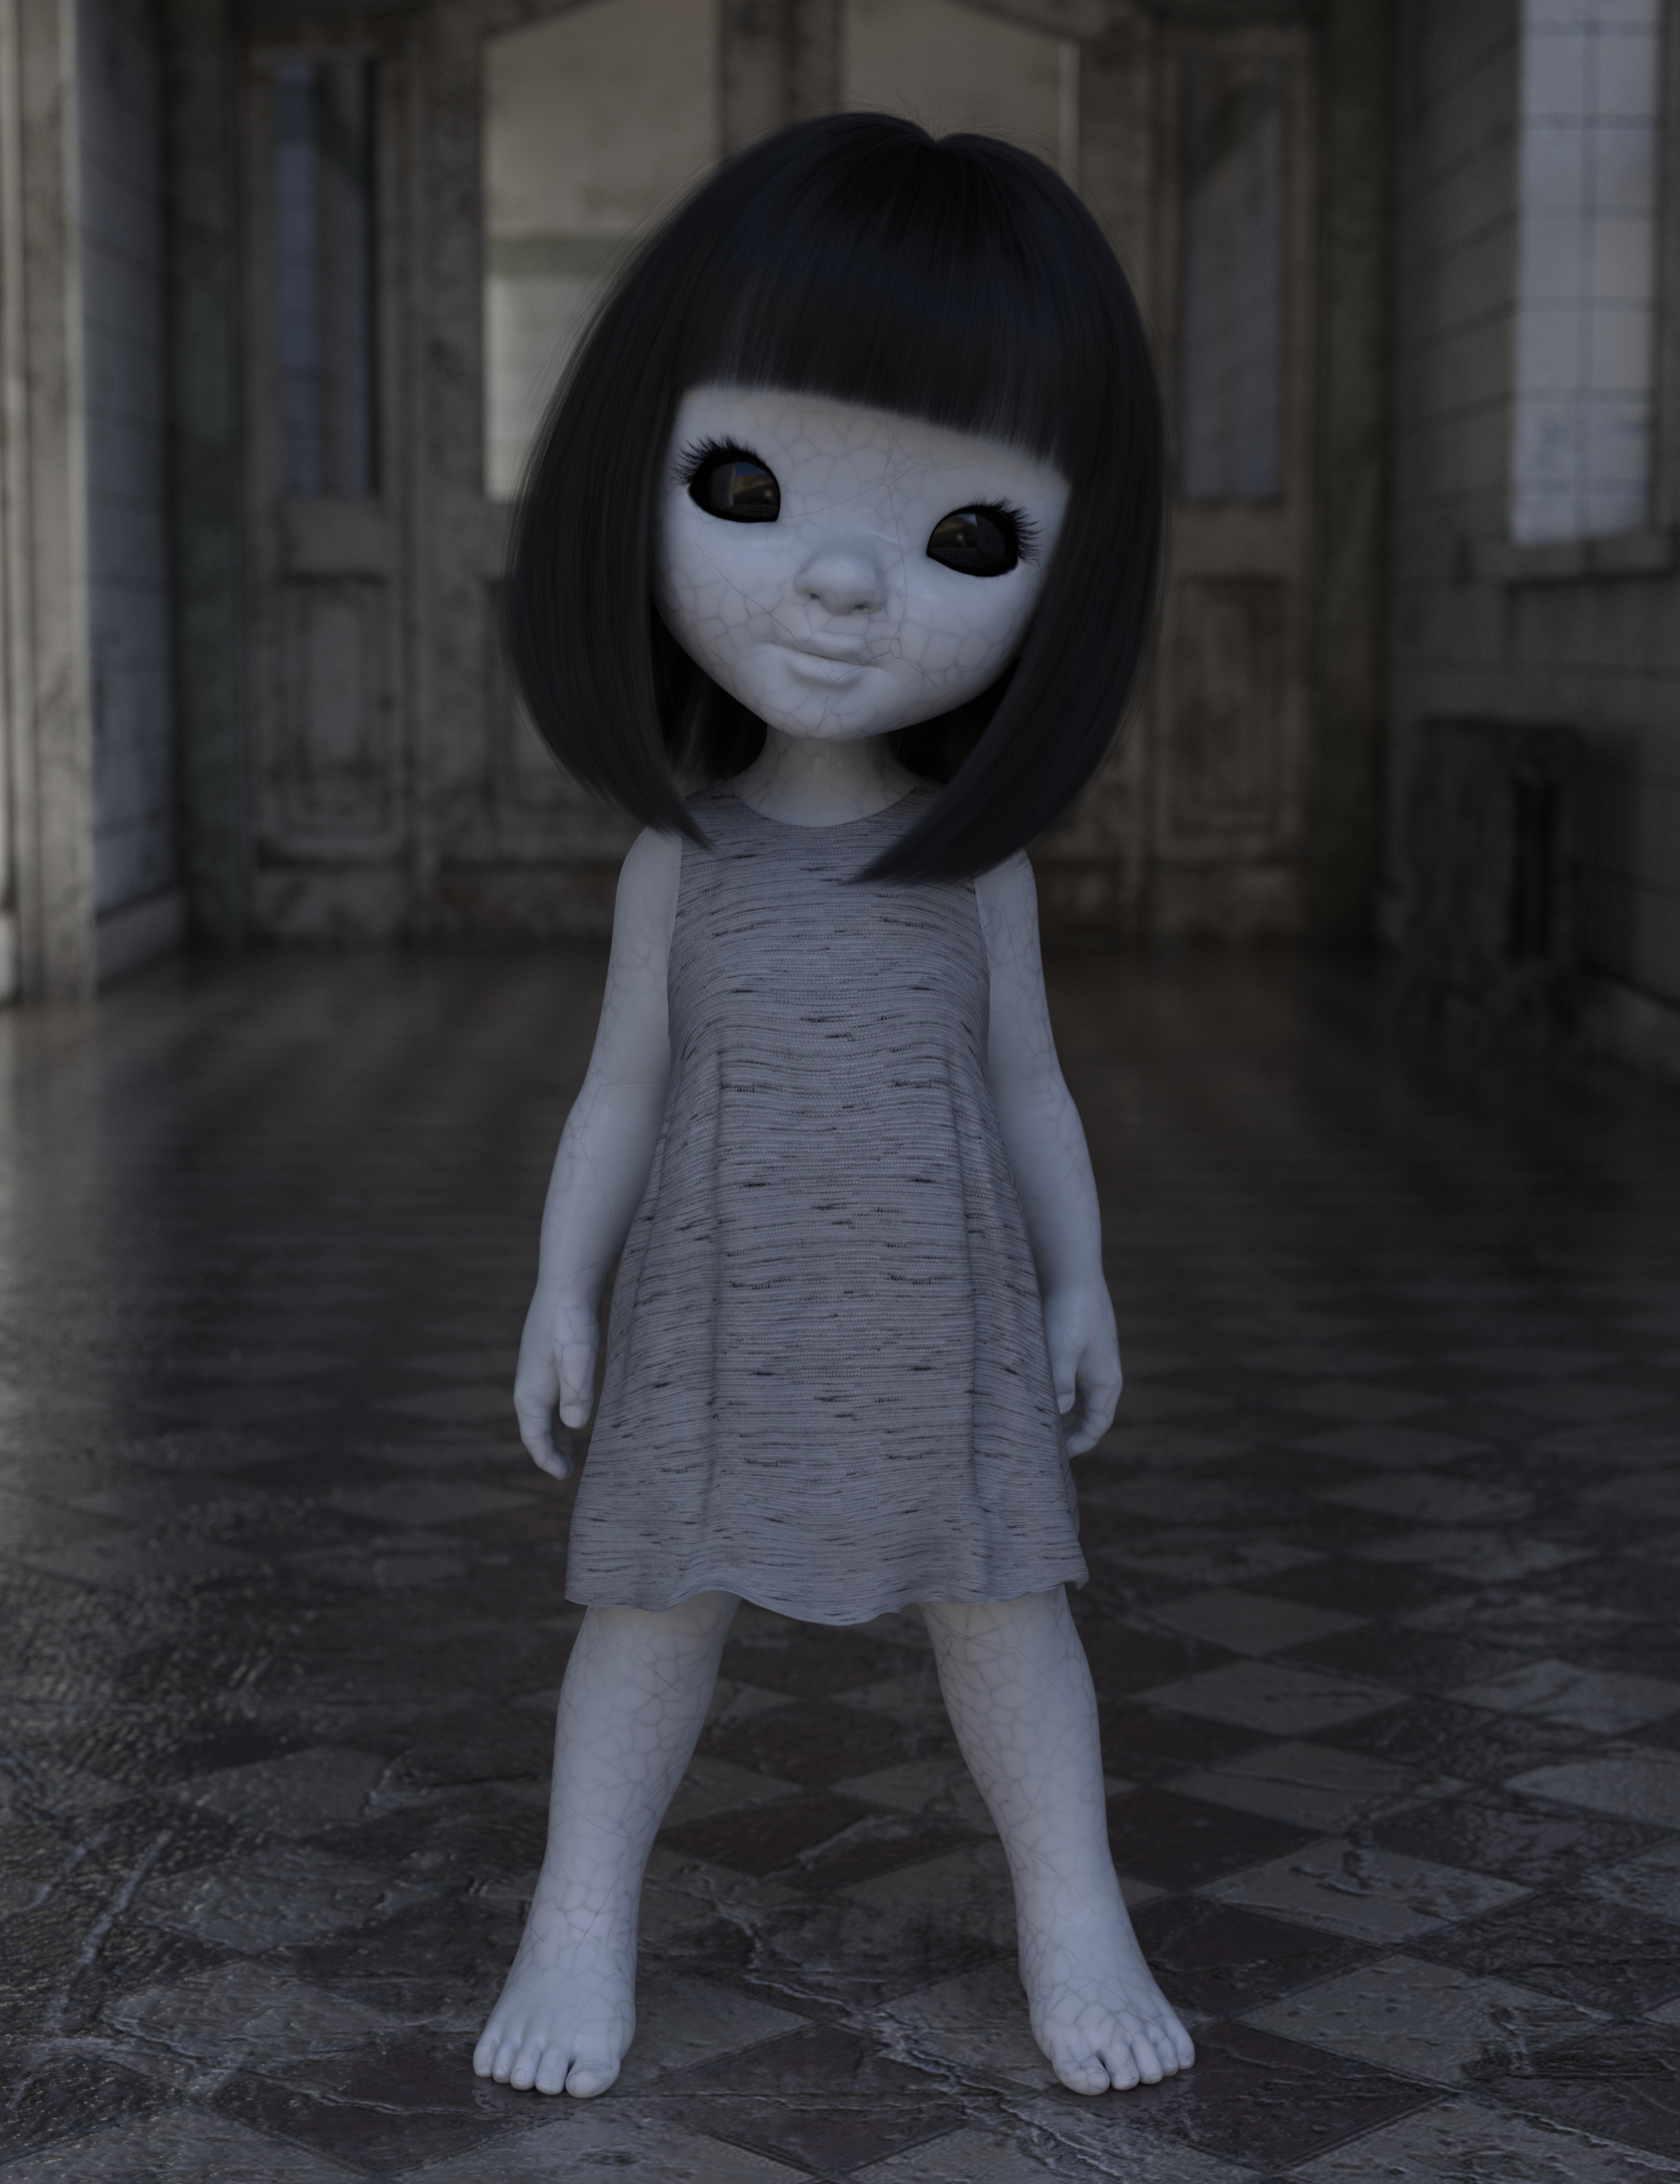 Spooky Doll Textures for Bugga Boo by: Moonscape GraphicsSade, 3D Models by Daz 3D